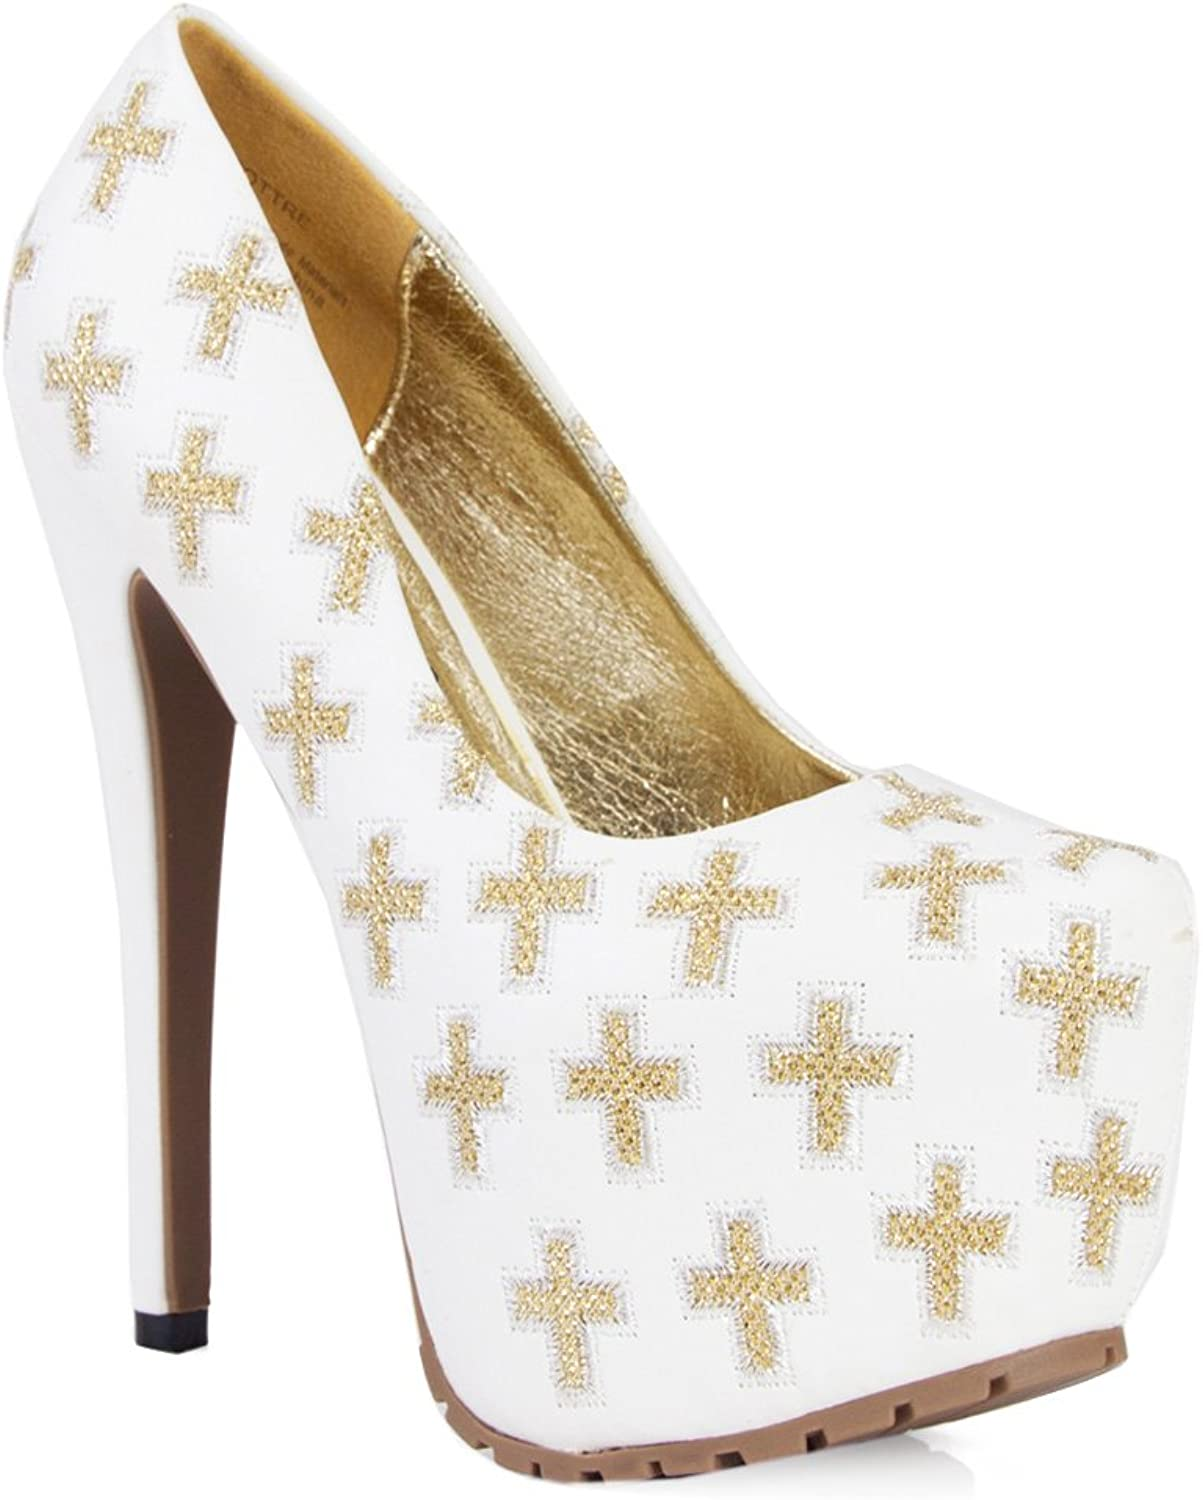 Privileged shoes Pottre Almond Toe gold Cross Embroidered Platform Pump